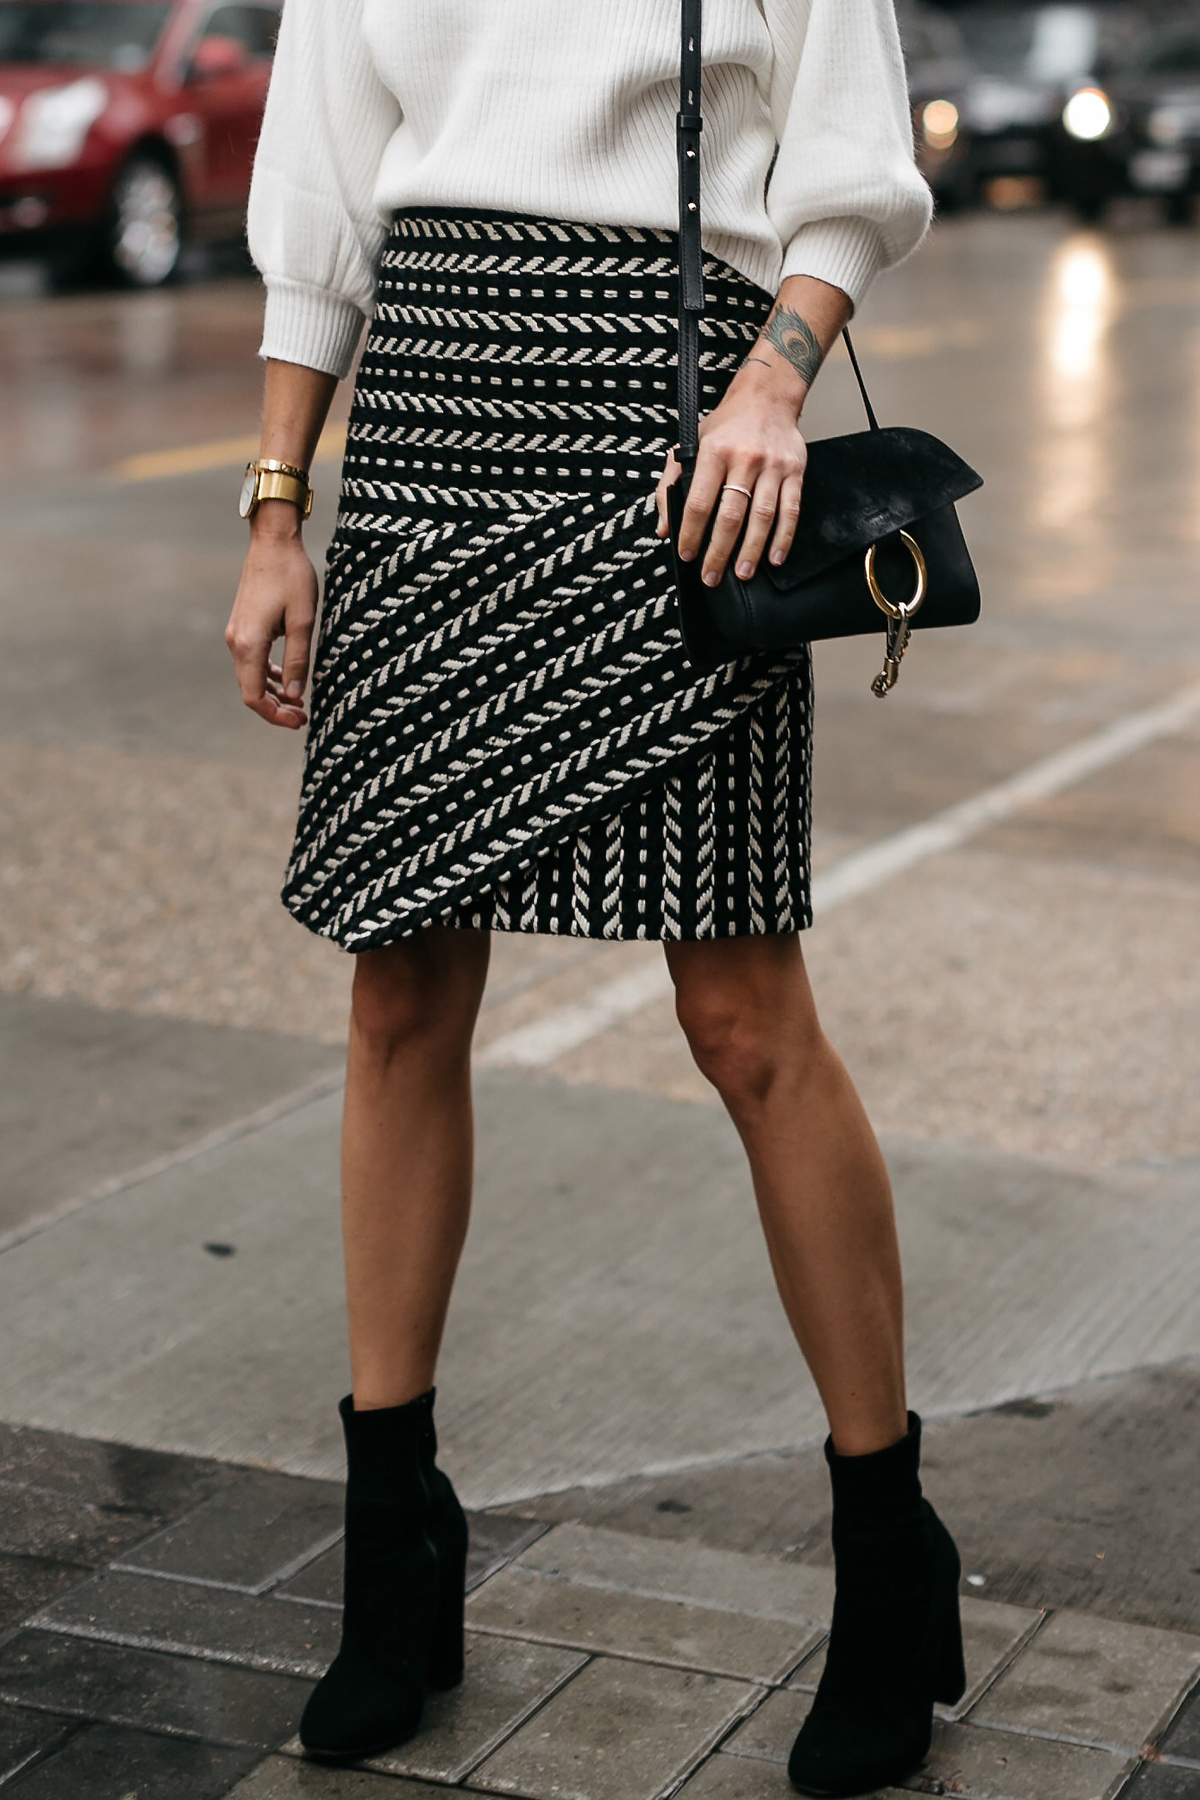 Fashion Jackson White Sweater Rachel Parcell Black and White Jacquard Skirt Chloe Faye Handbag Black Ankle Booties